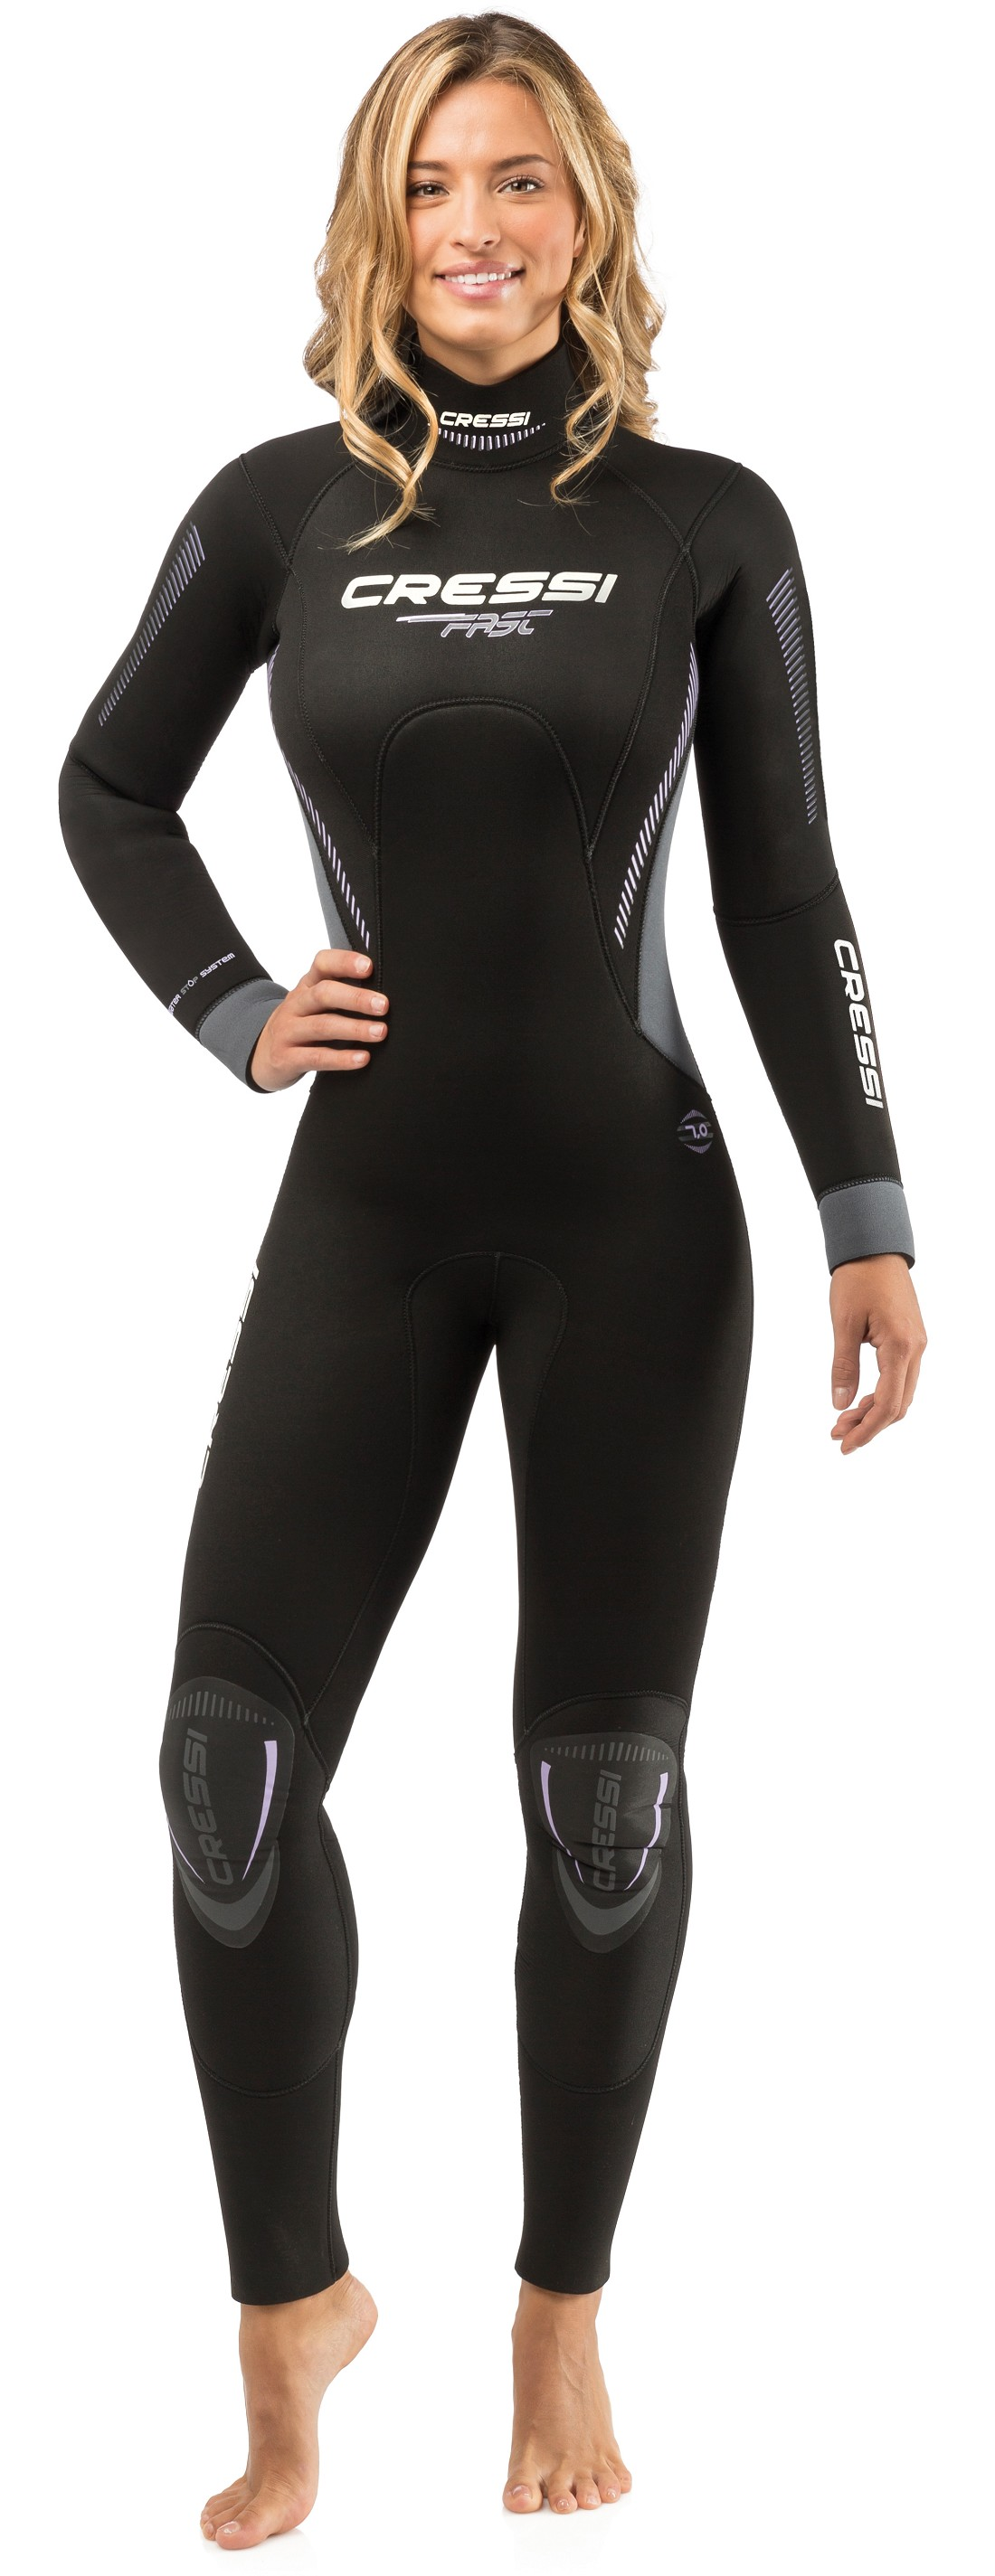 FAST lady Wetsuit 7 mm